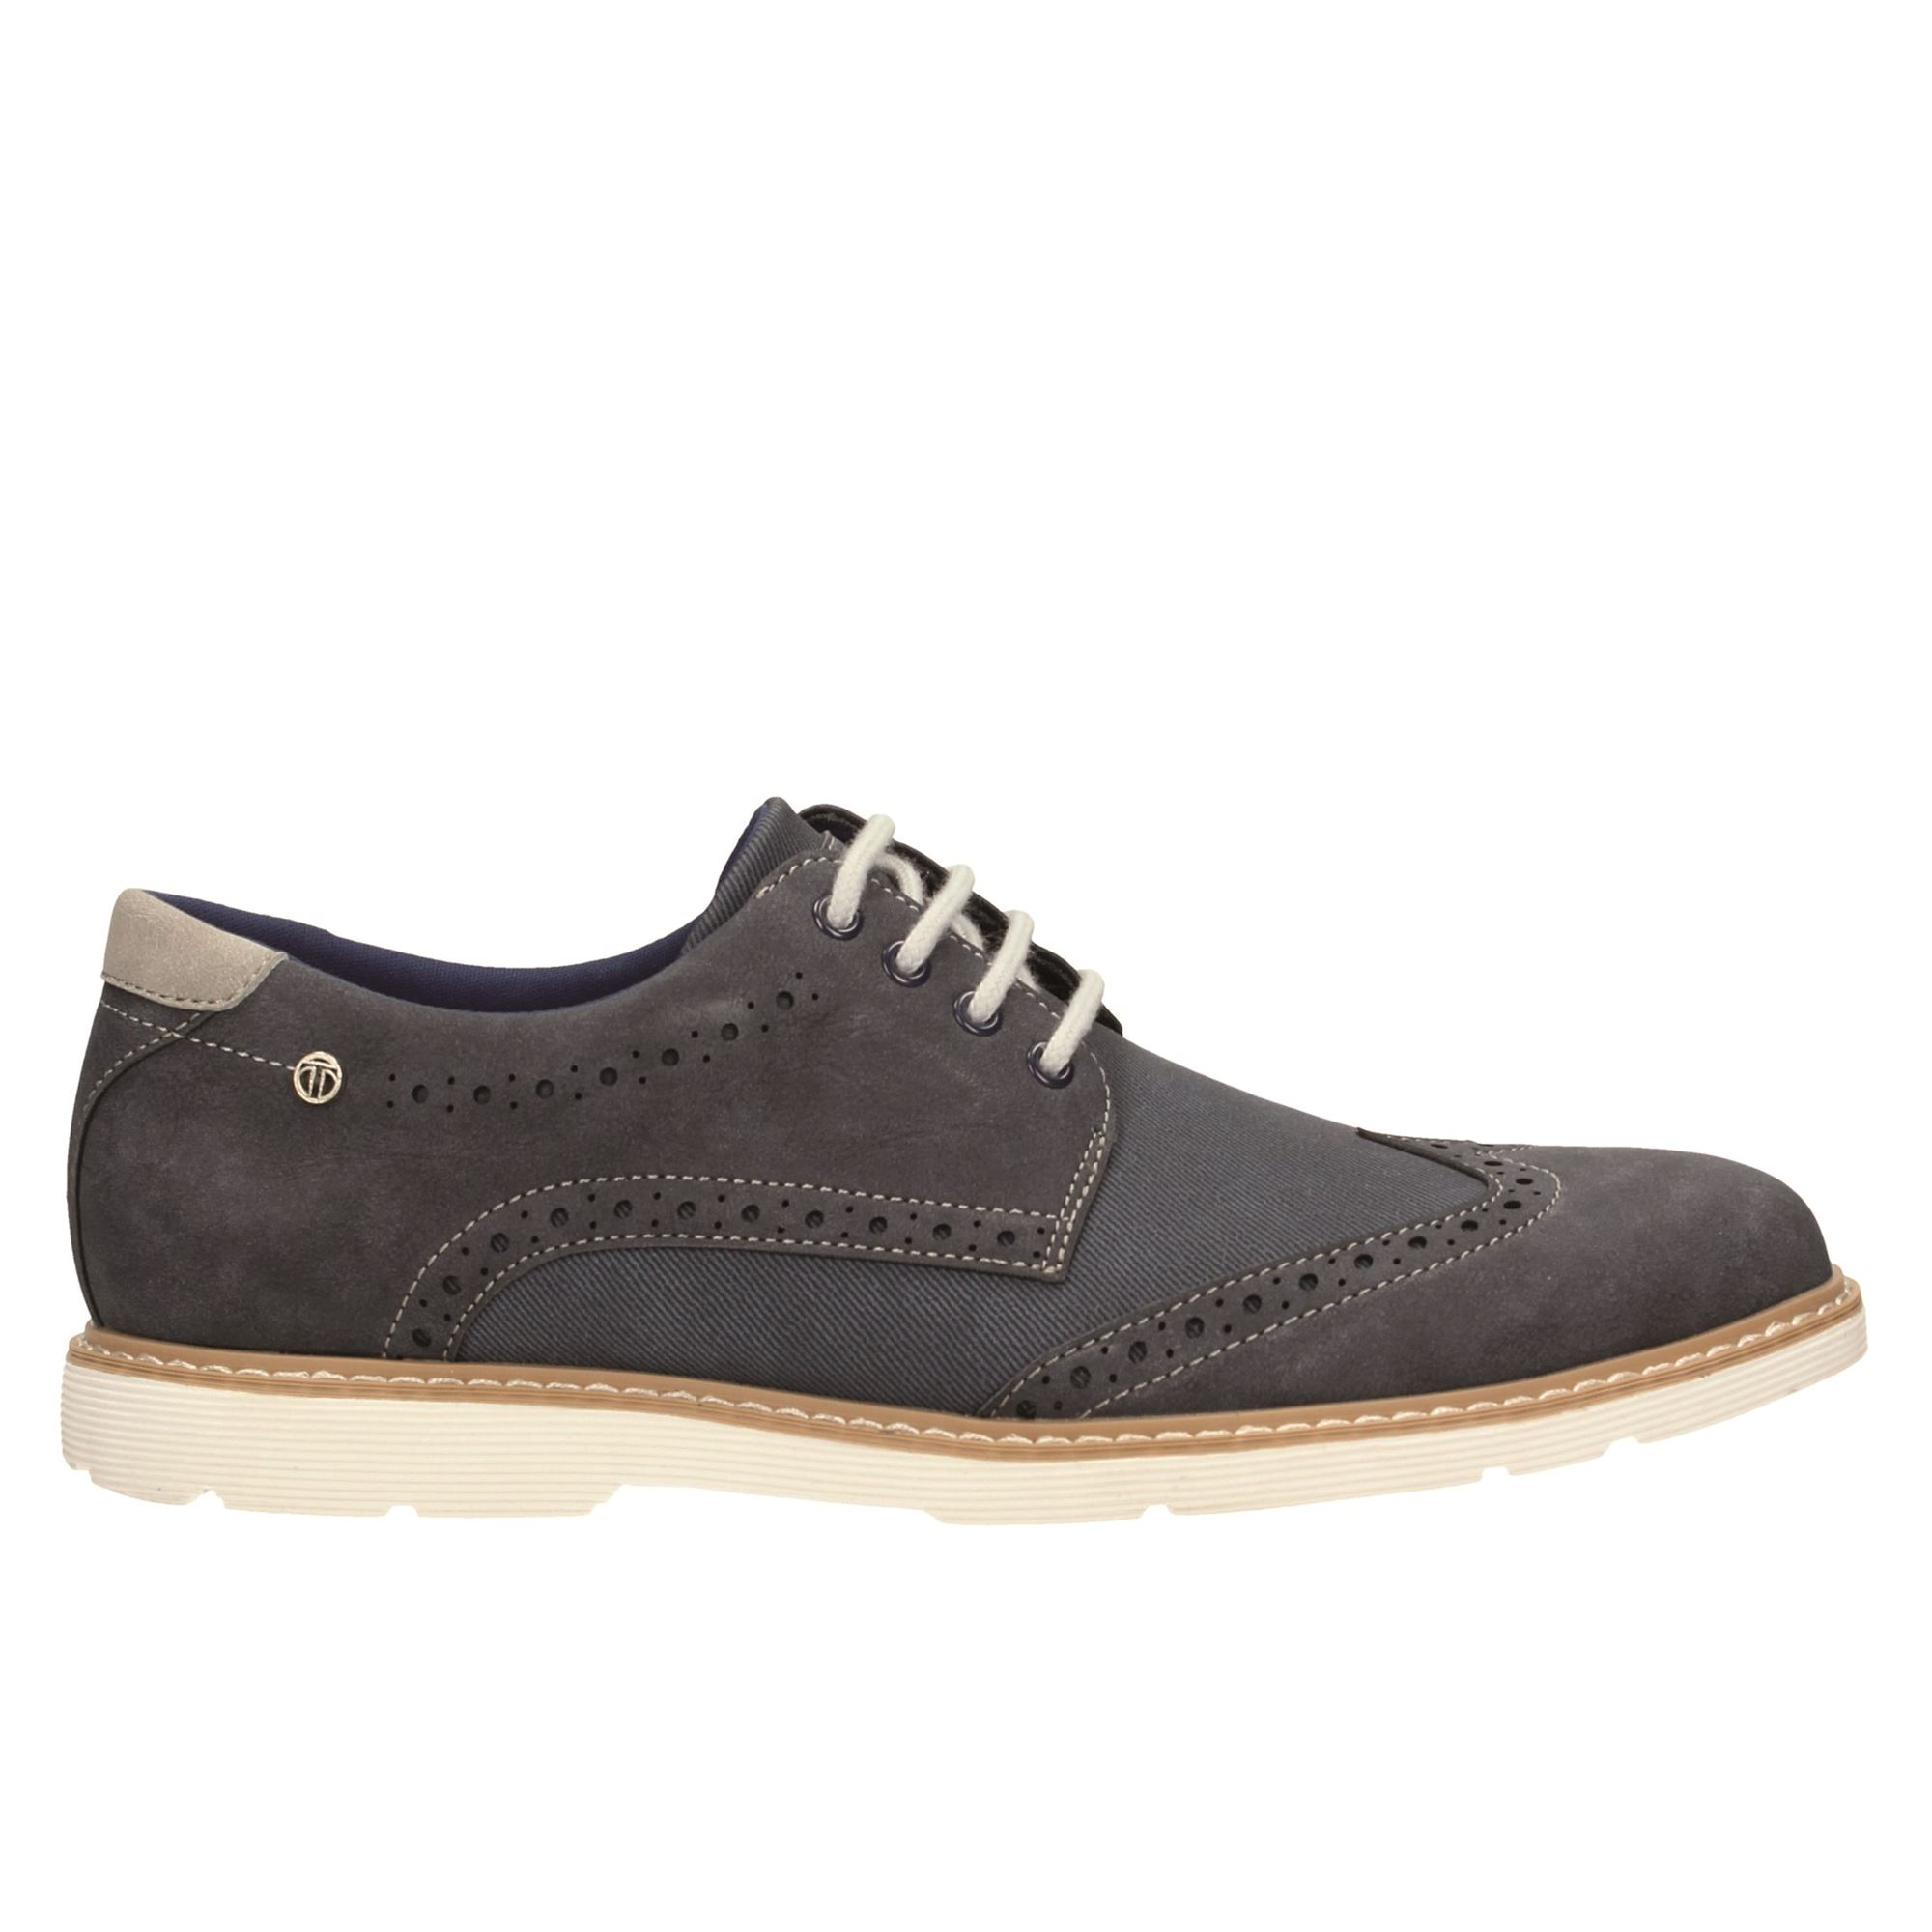 Tata Italia Shoes Man Derby Navy 805107